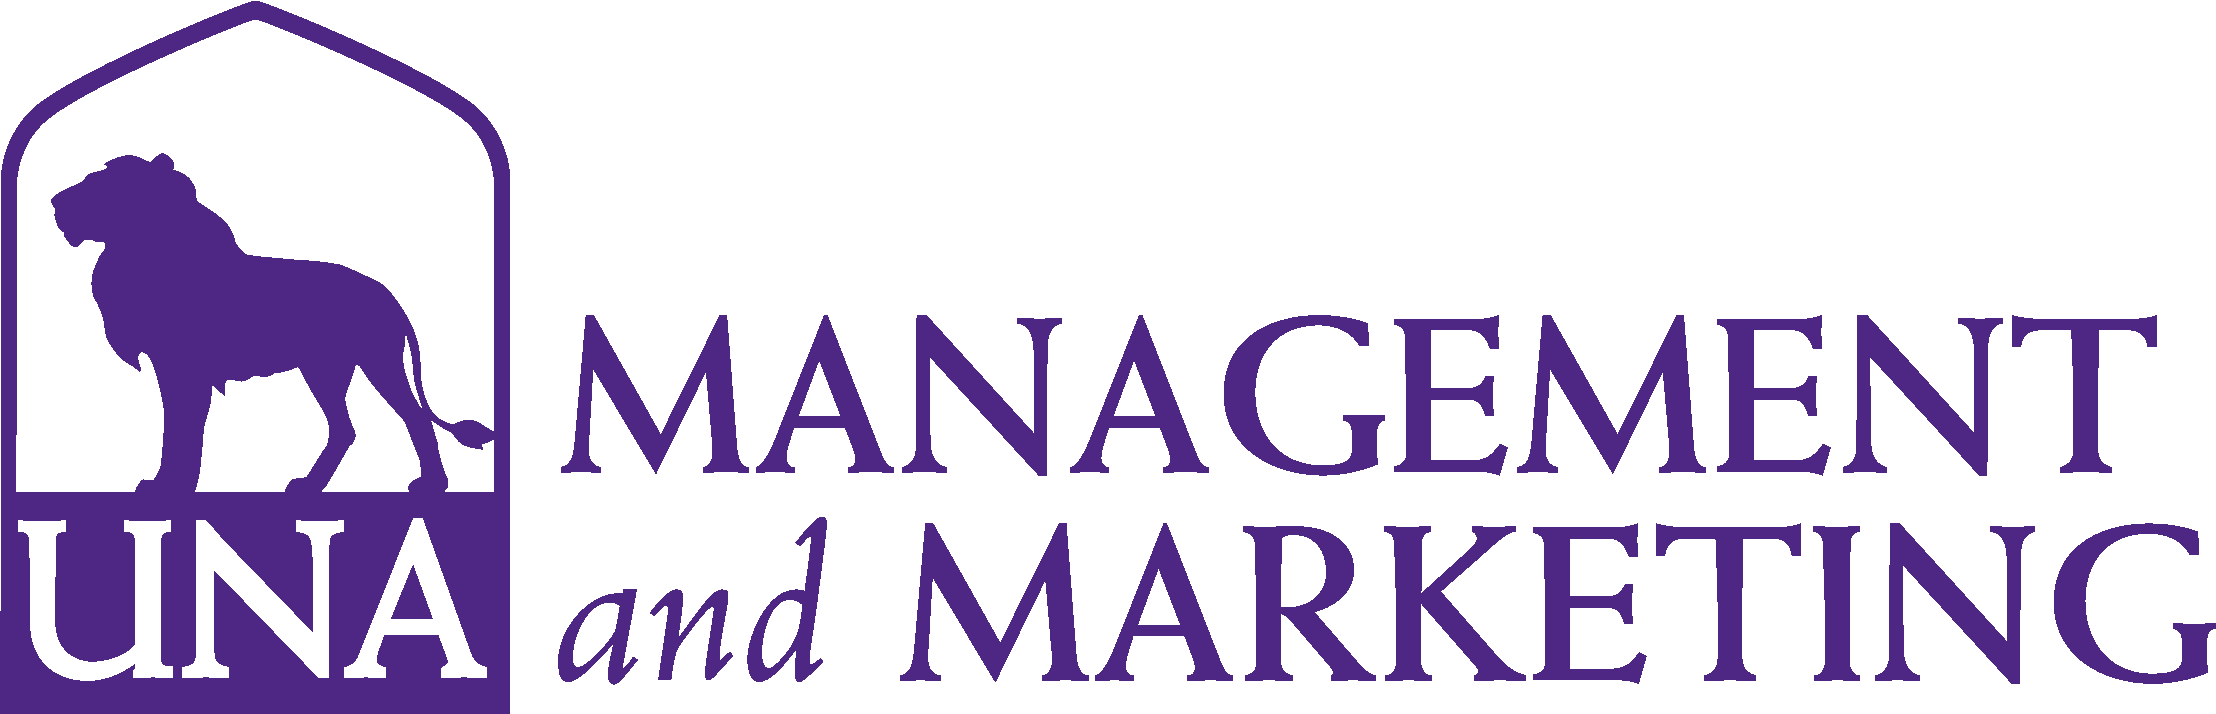 College of Business - Management and Marketing Logo - Purple - Version 3